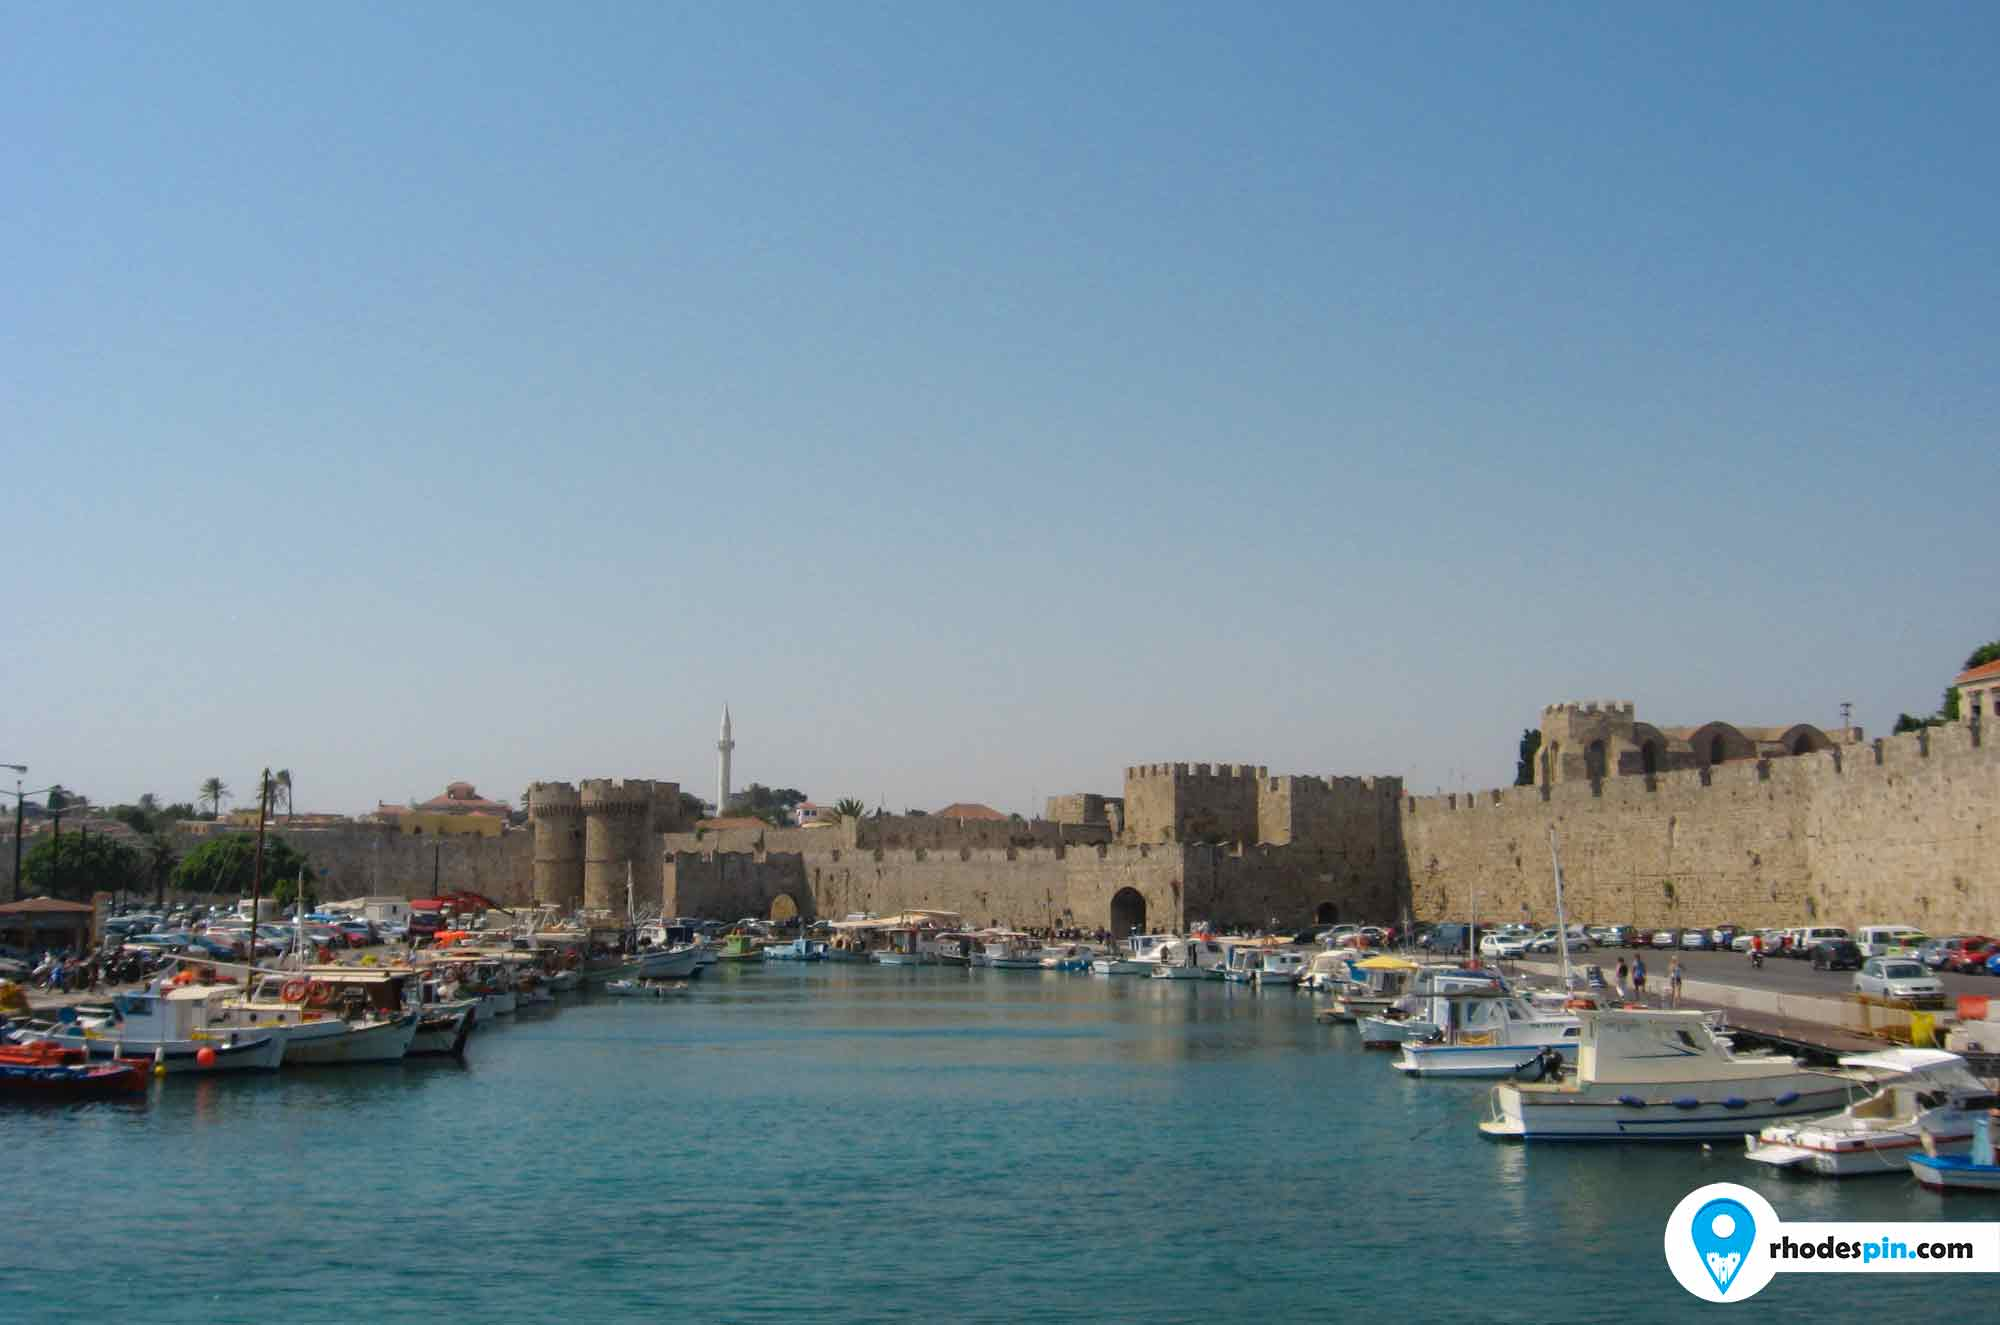 Old town rhodes, old town rodos, medieval rhodes,medieval rodos